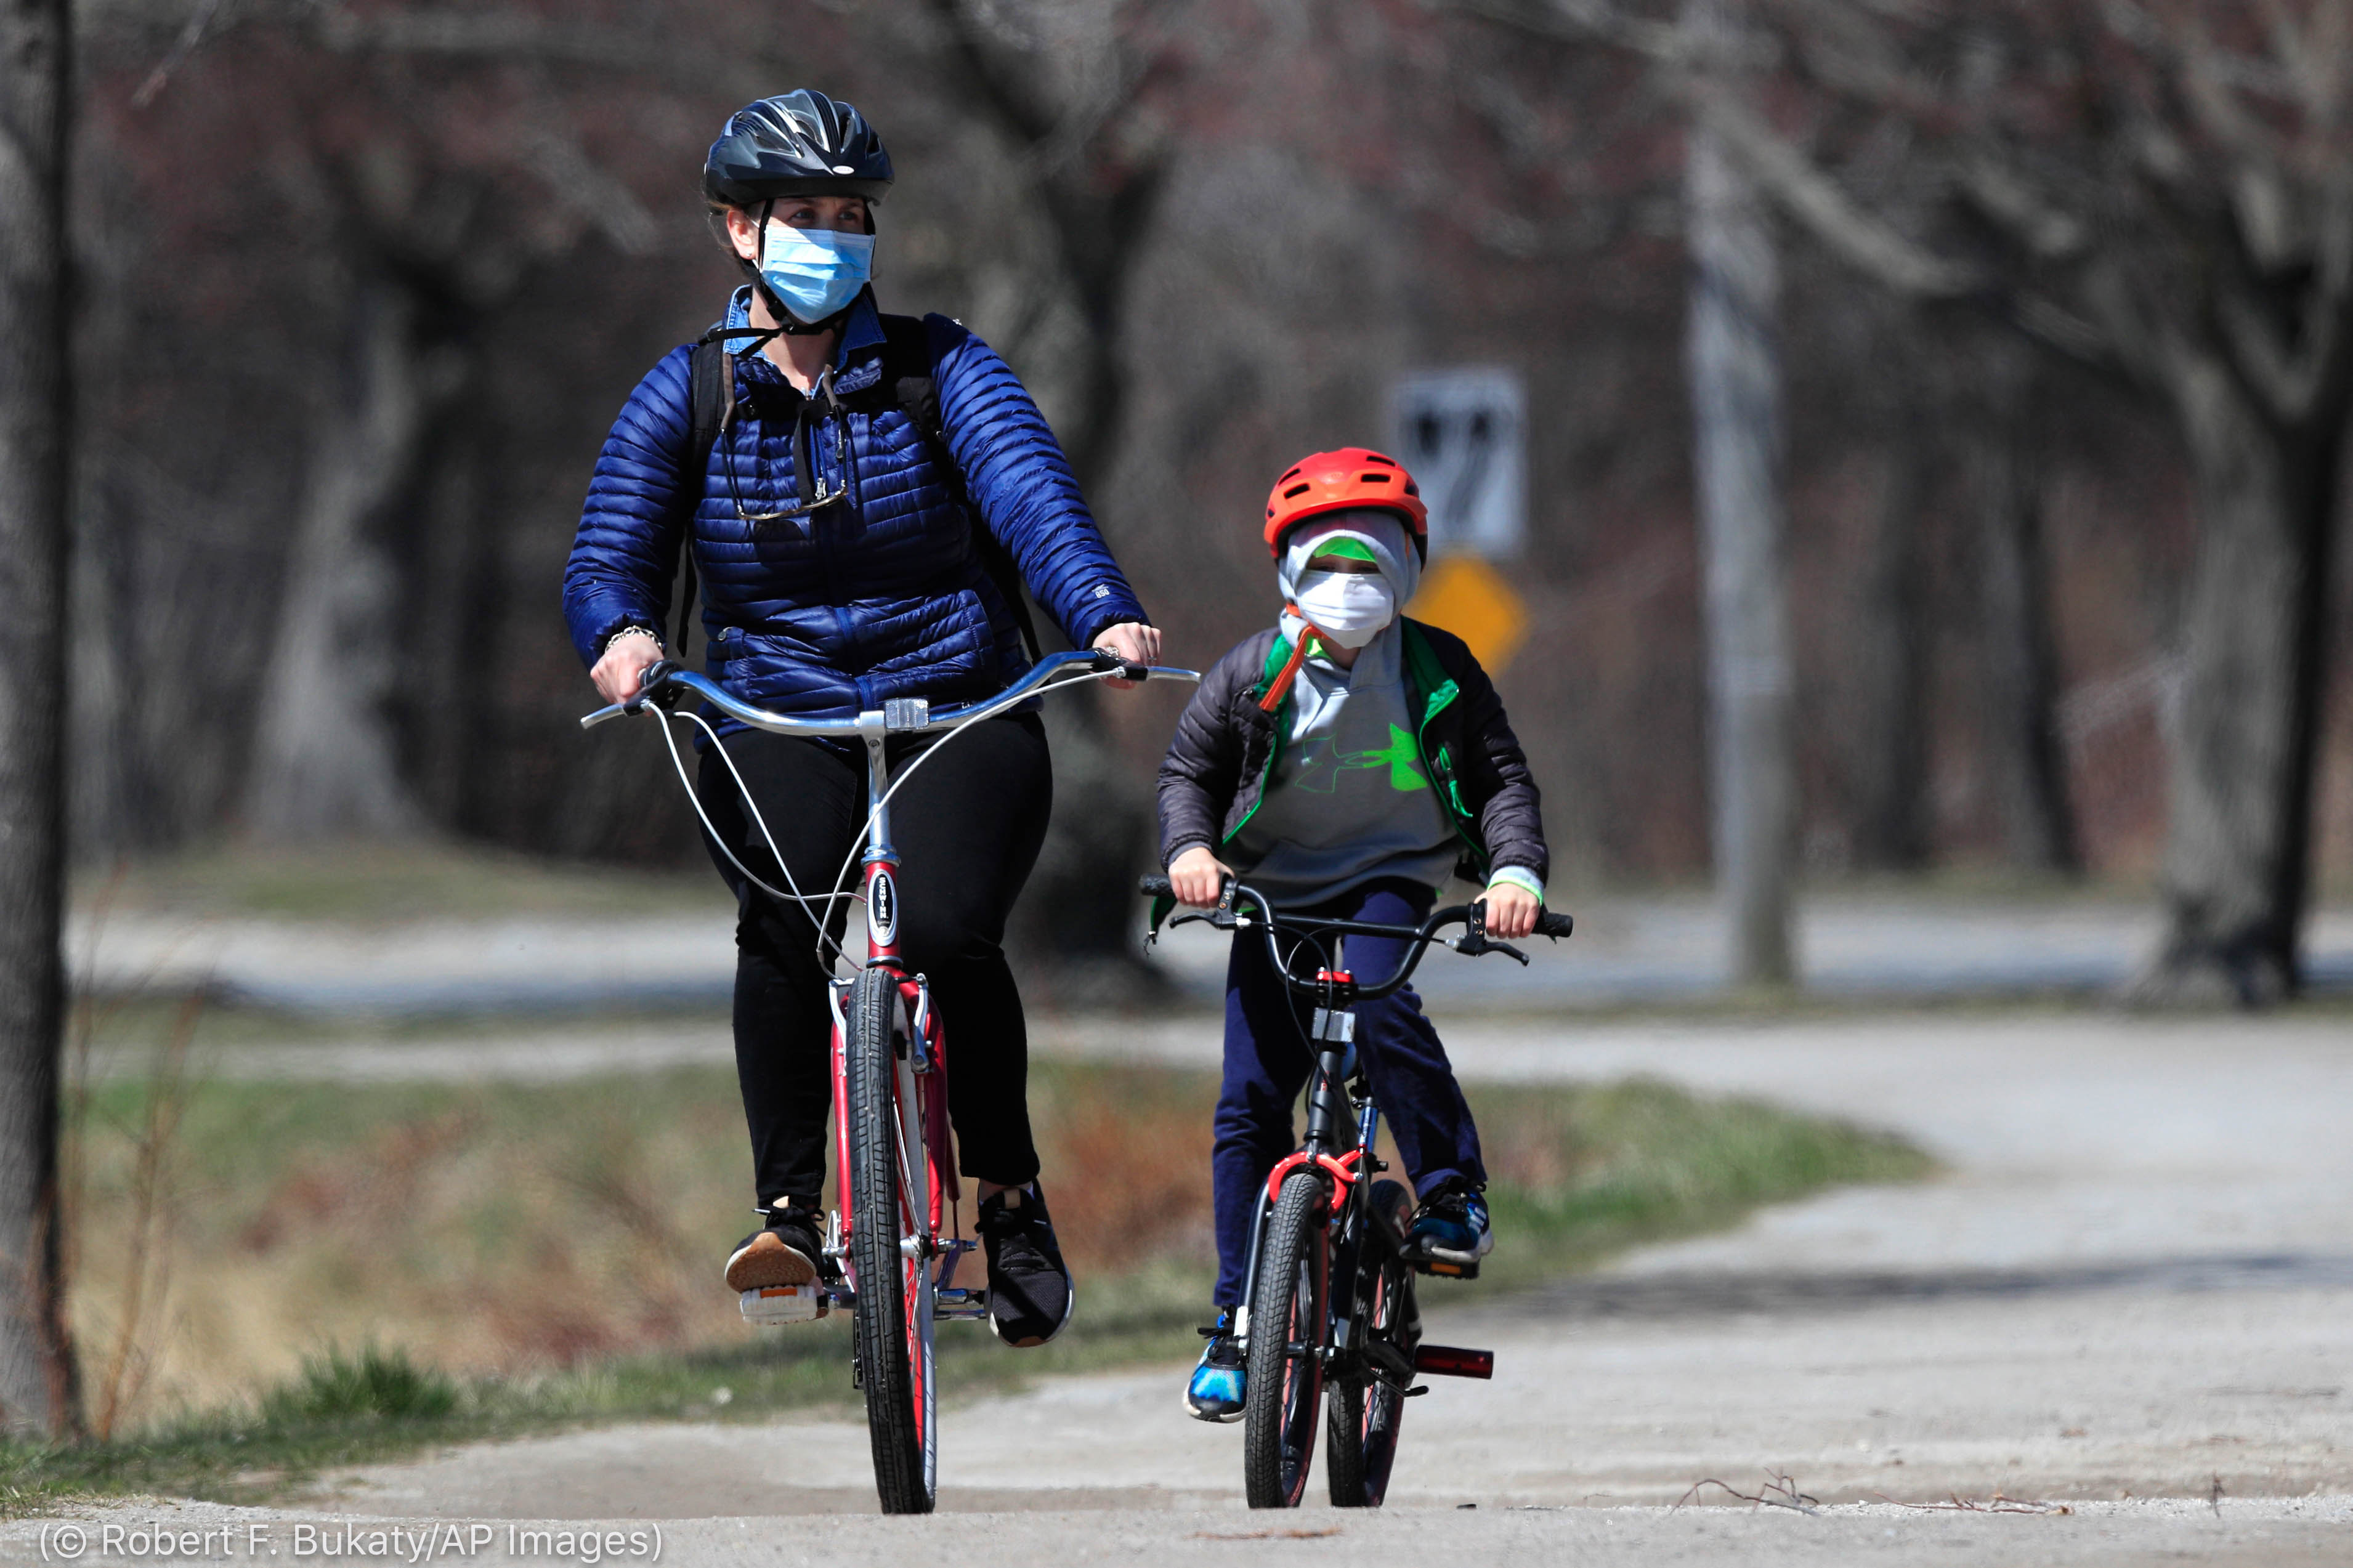 Adult and child wearing face masks while riding bicycles (© Robert F. Bukaty/AP Images)